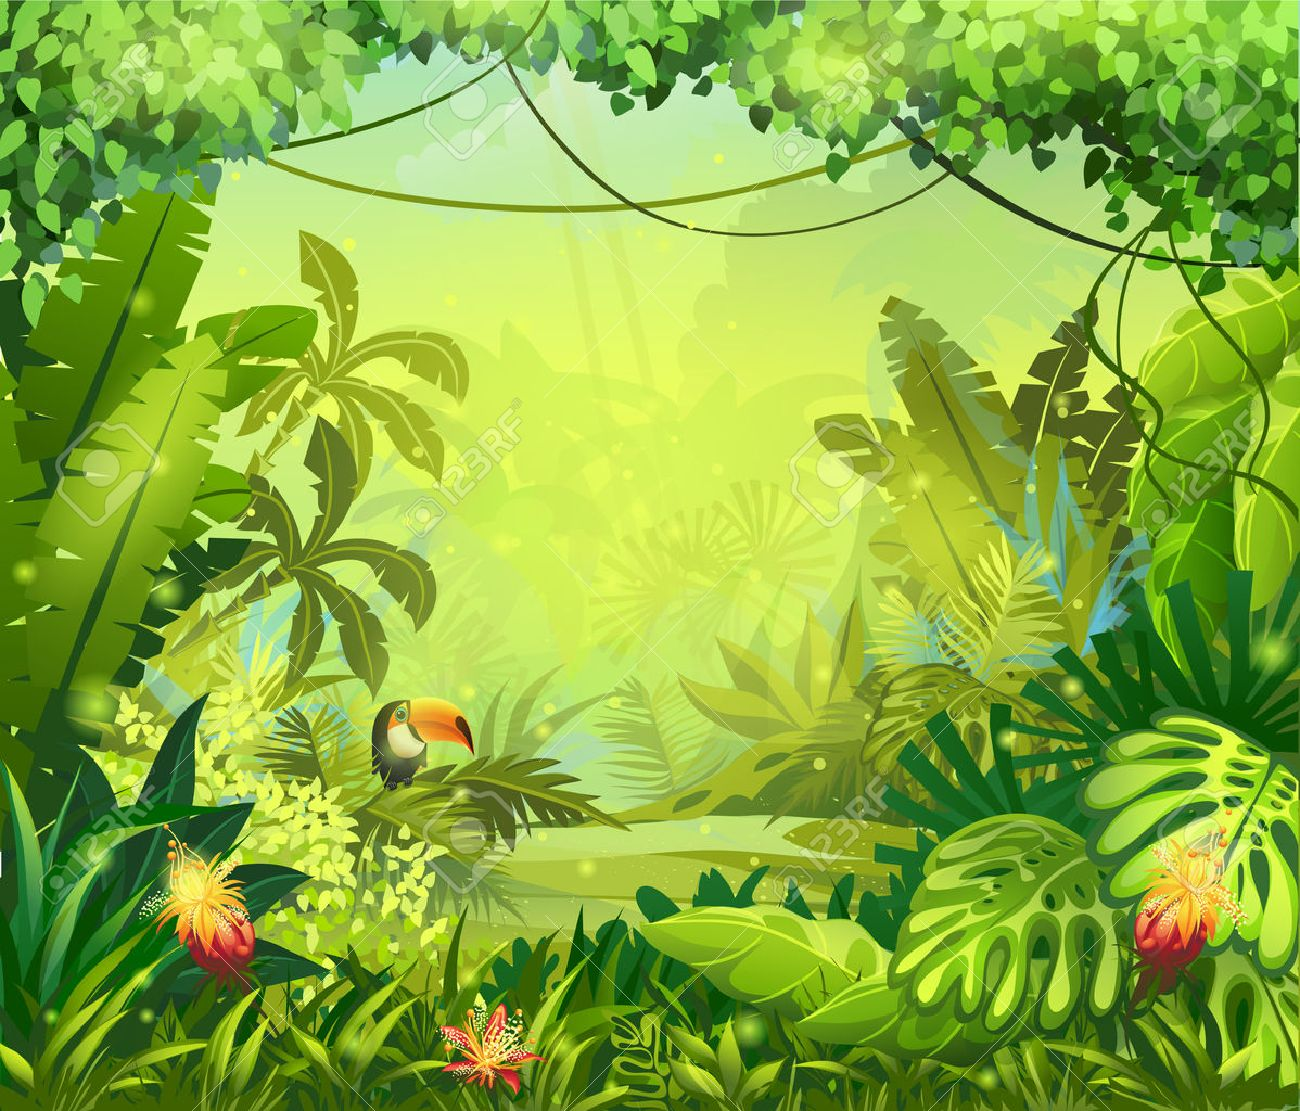 llustration with flowers and jungle toucan - 30922324